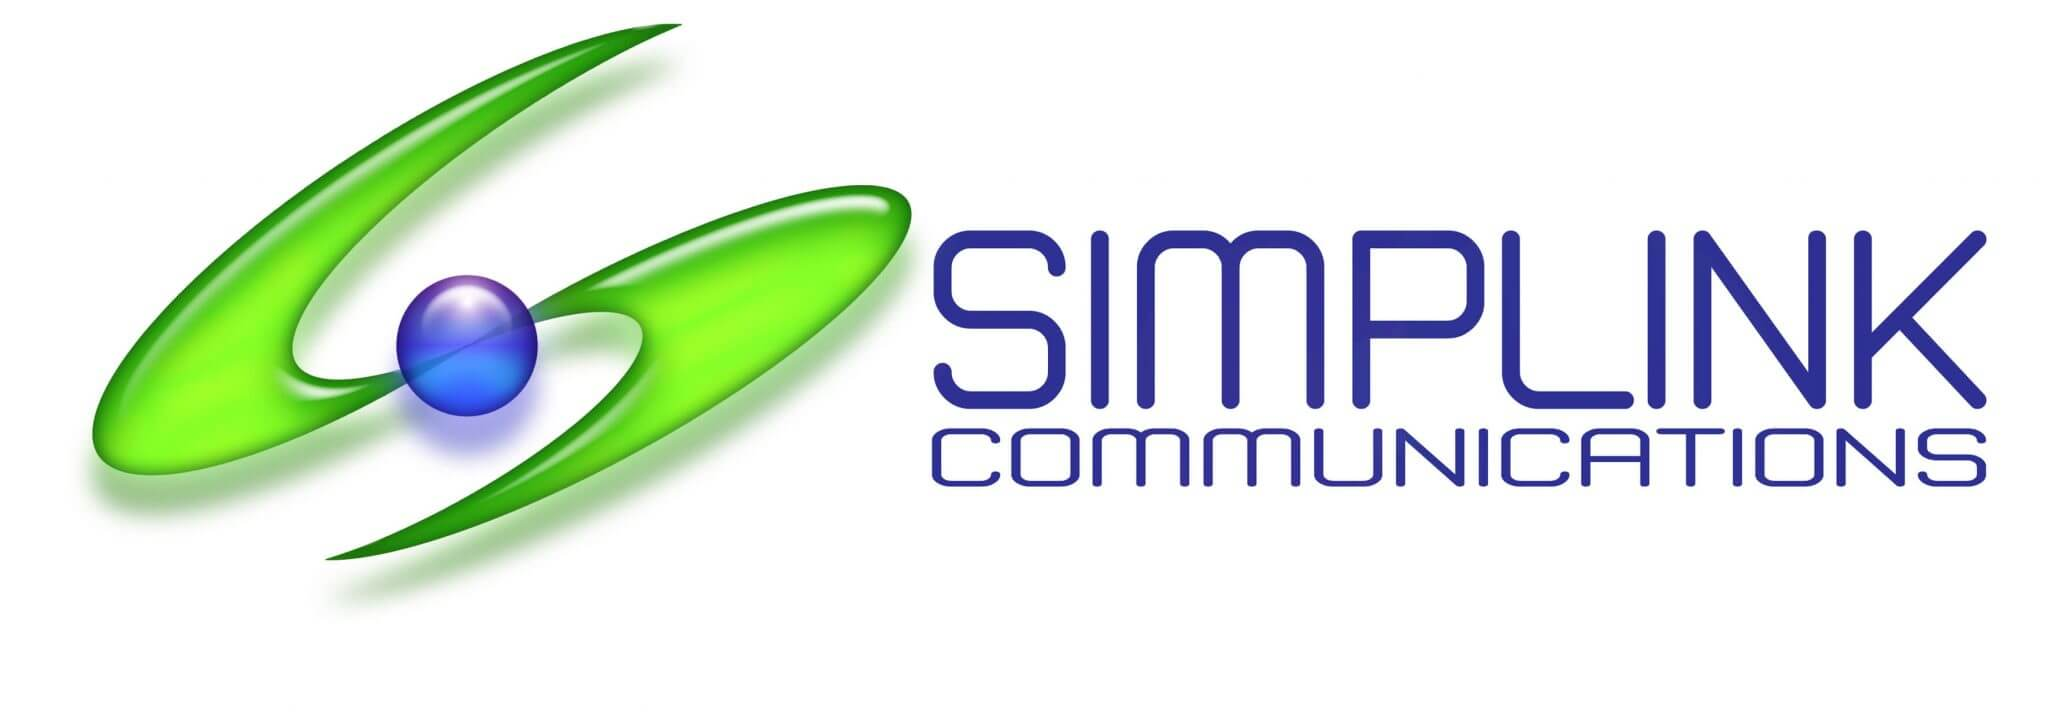 Simplink Communications - getting started to build your Website